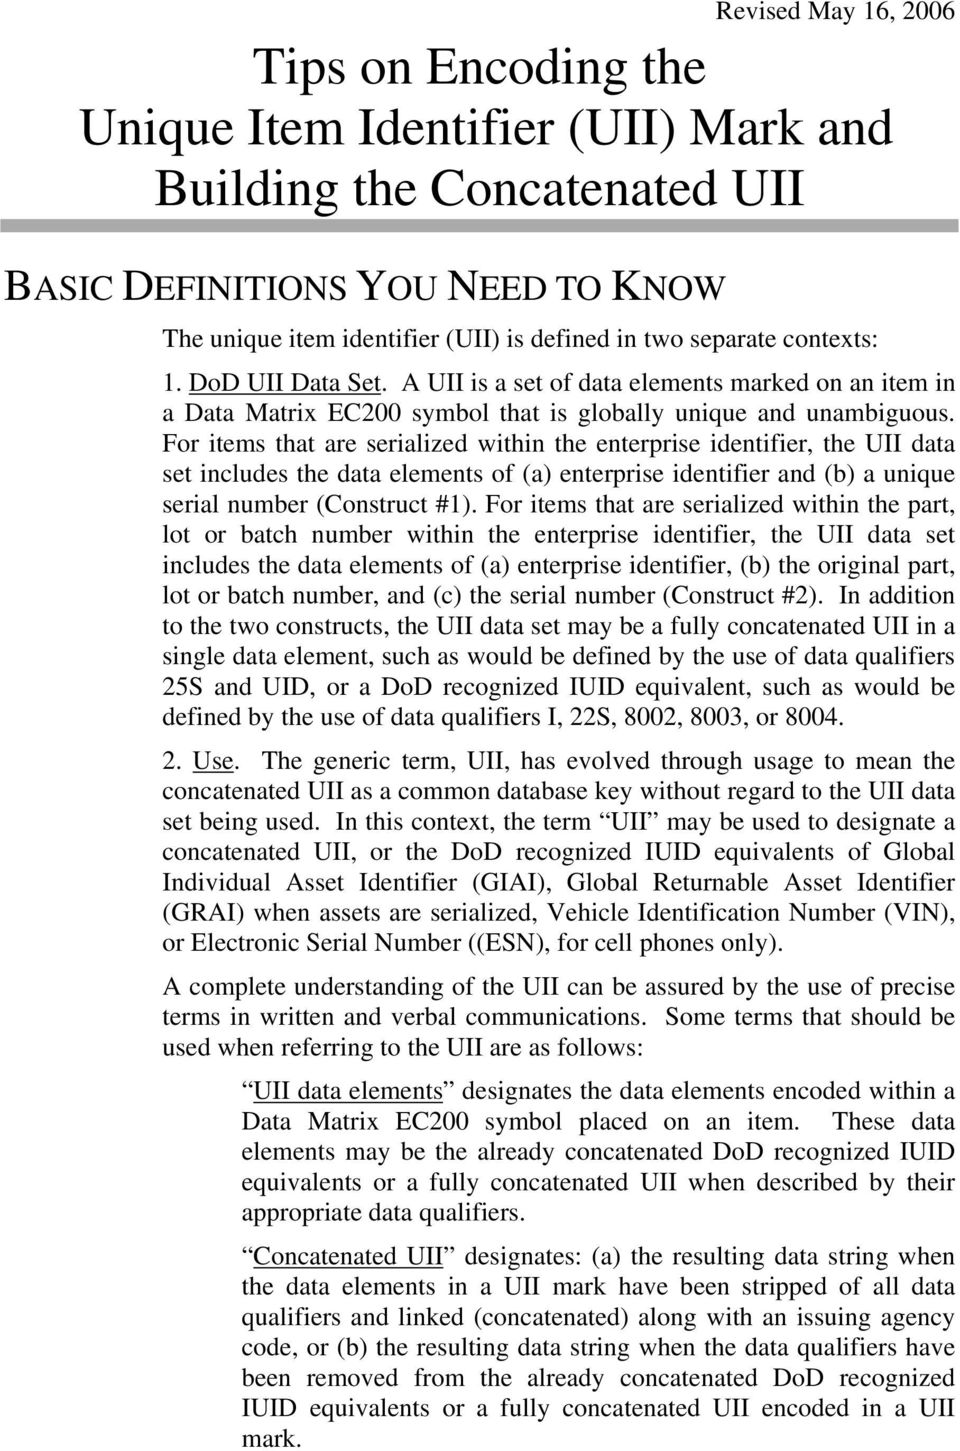 For items that are serialized within the enterprise identifier, the UII data set includes the data elements of (a) enterprise identifier and (b) a unique serial number (Construct #1).